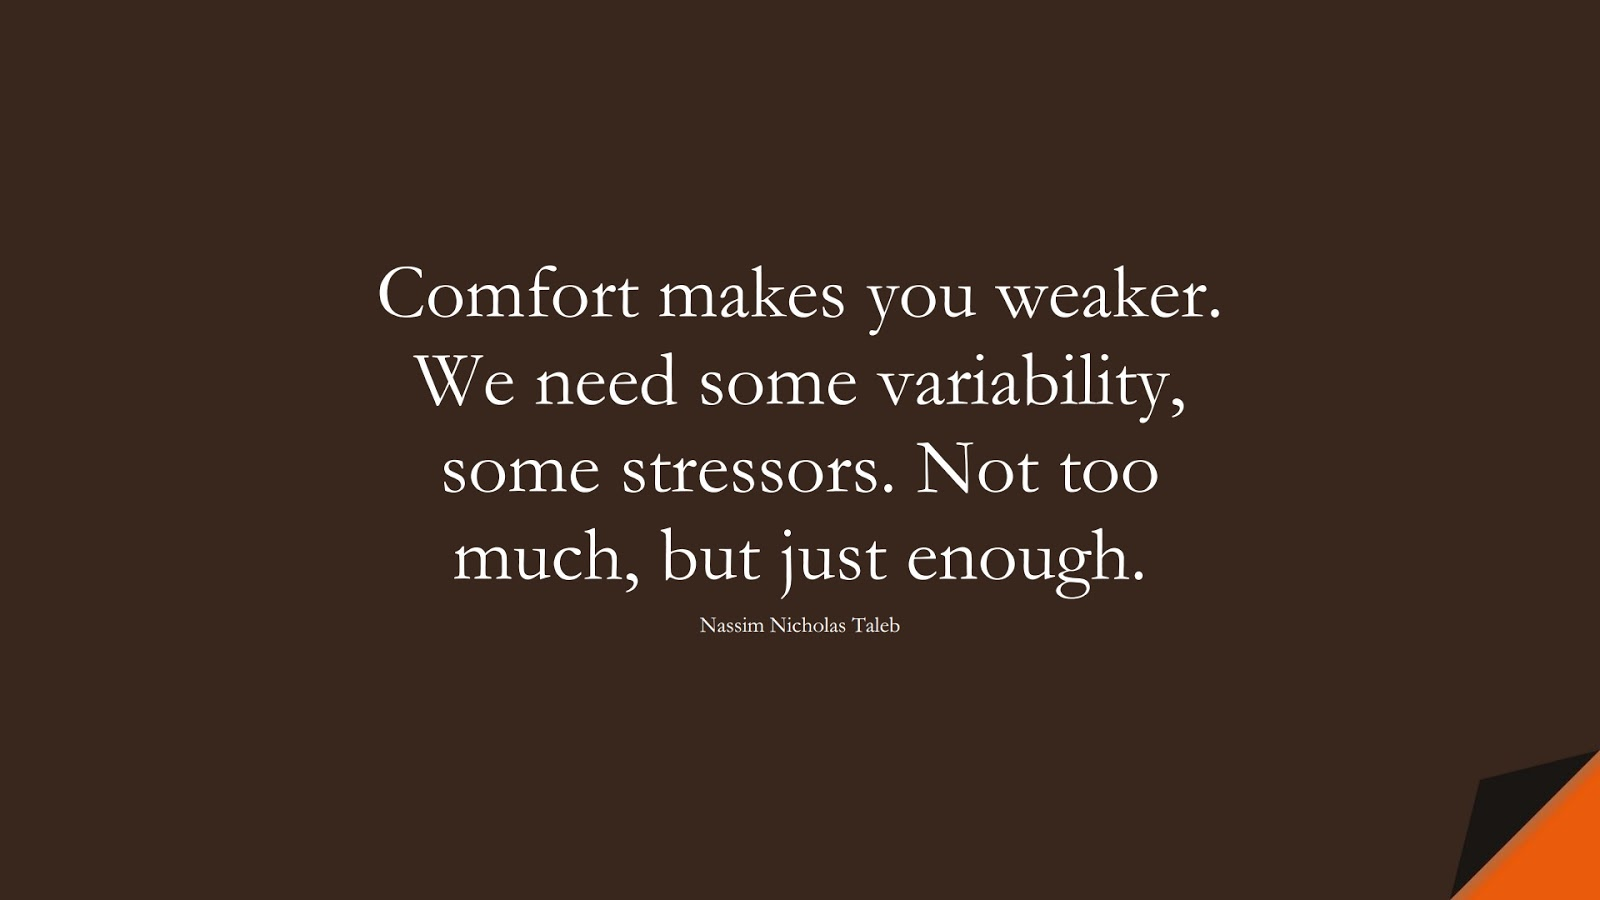 Comfort makes you weaker. We need some variability, some stressors. Not too much, but just enough. (Nassim Nicholas Taleb);  #StoicQuotes